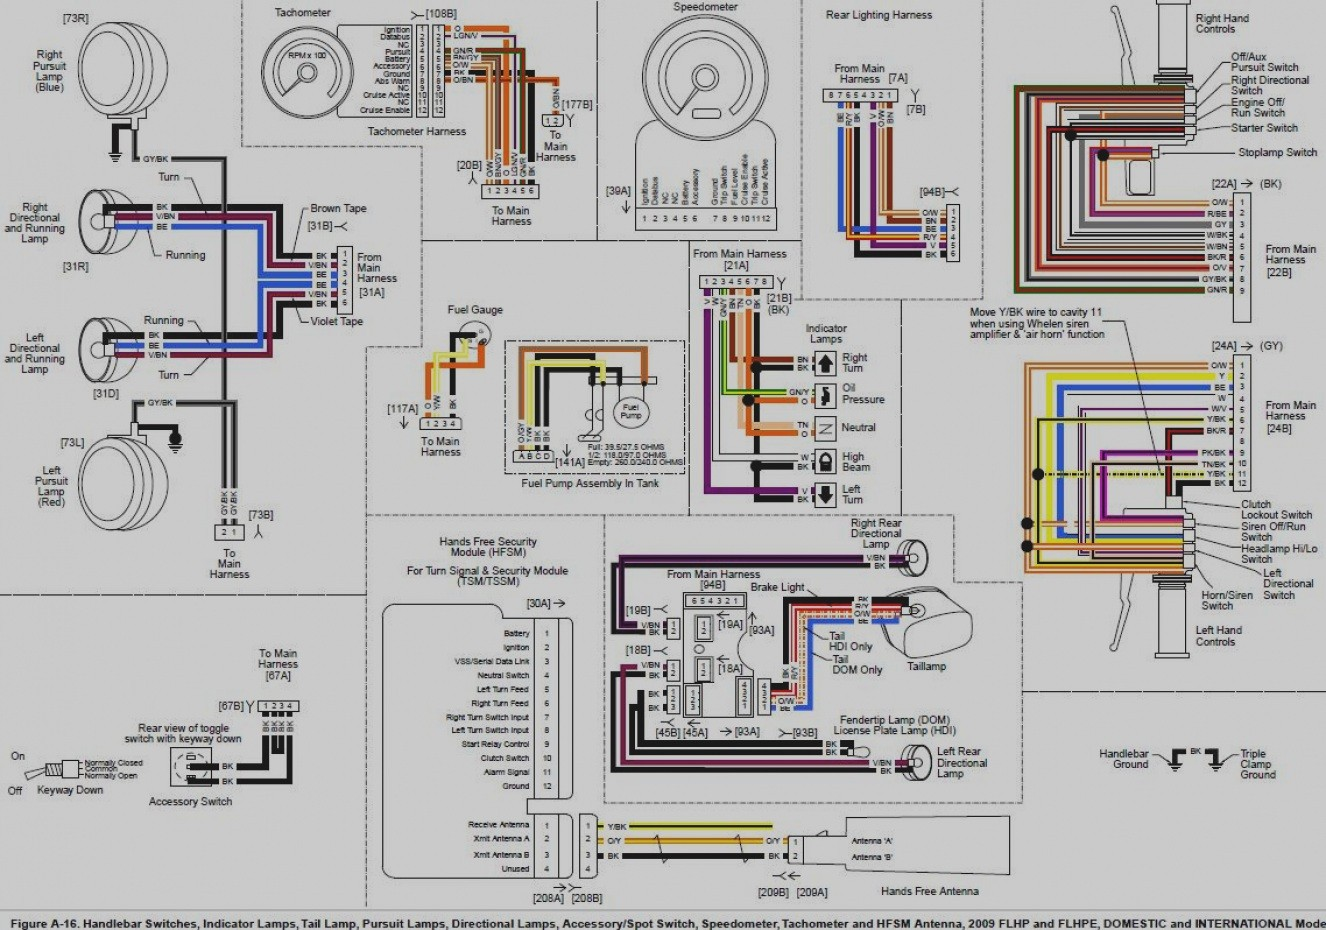 2001 Sportster Tail Light Wiring Diagram - DIY Enthusiasts Wiring ...